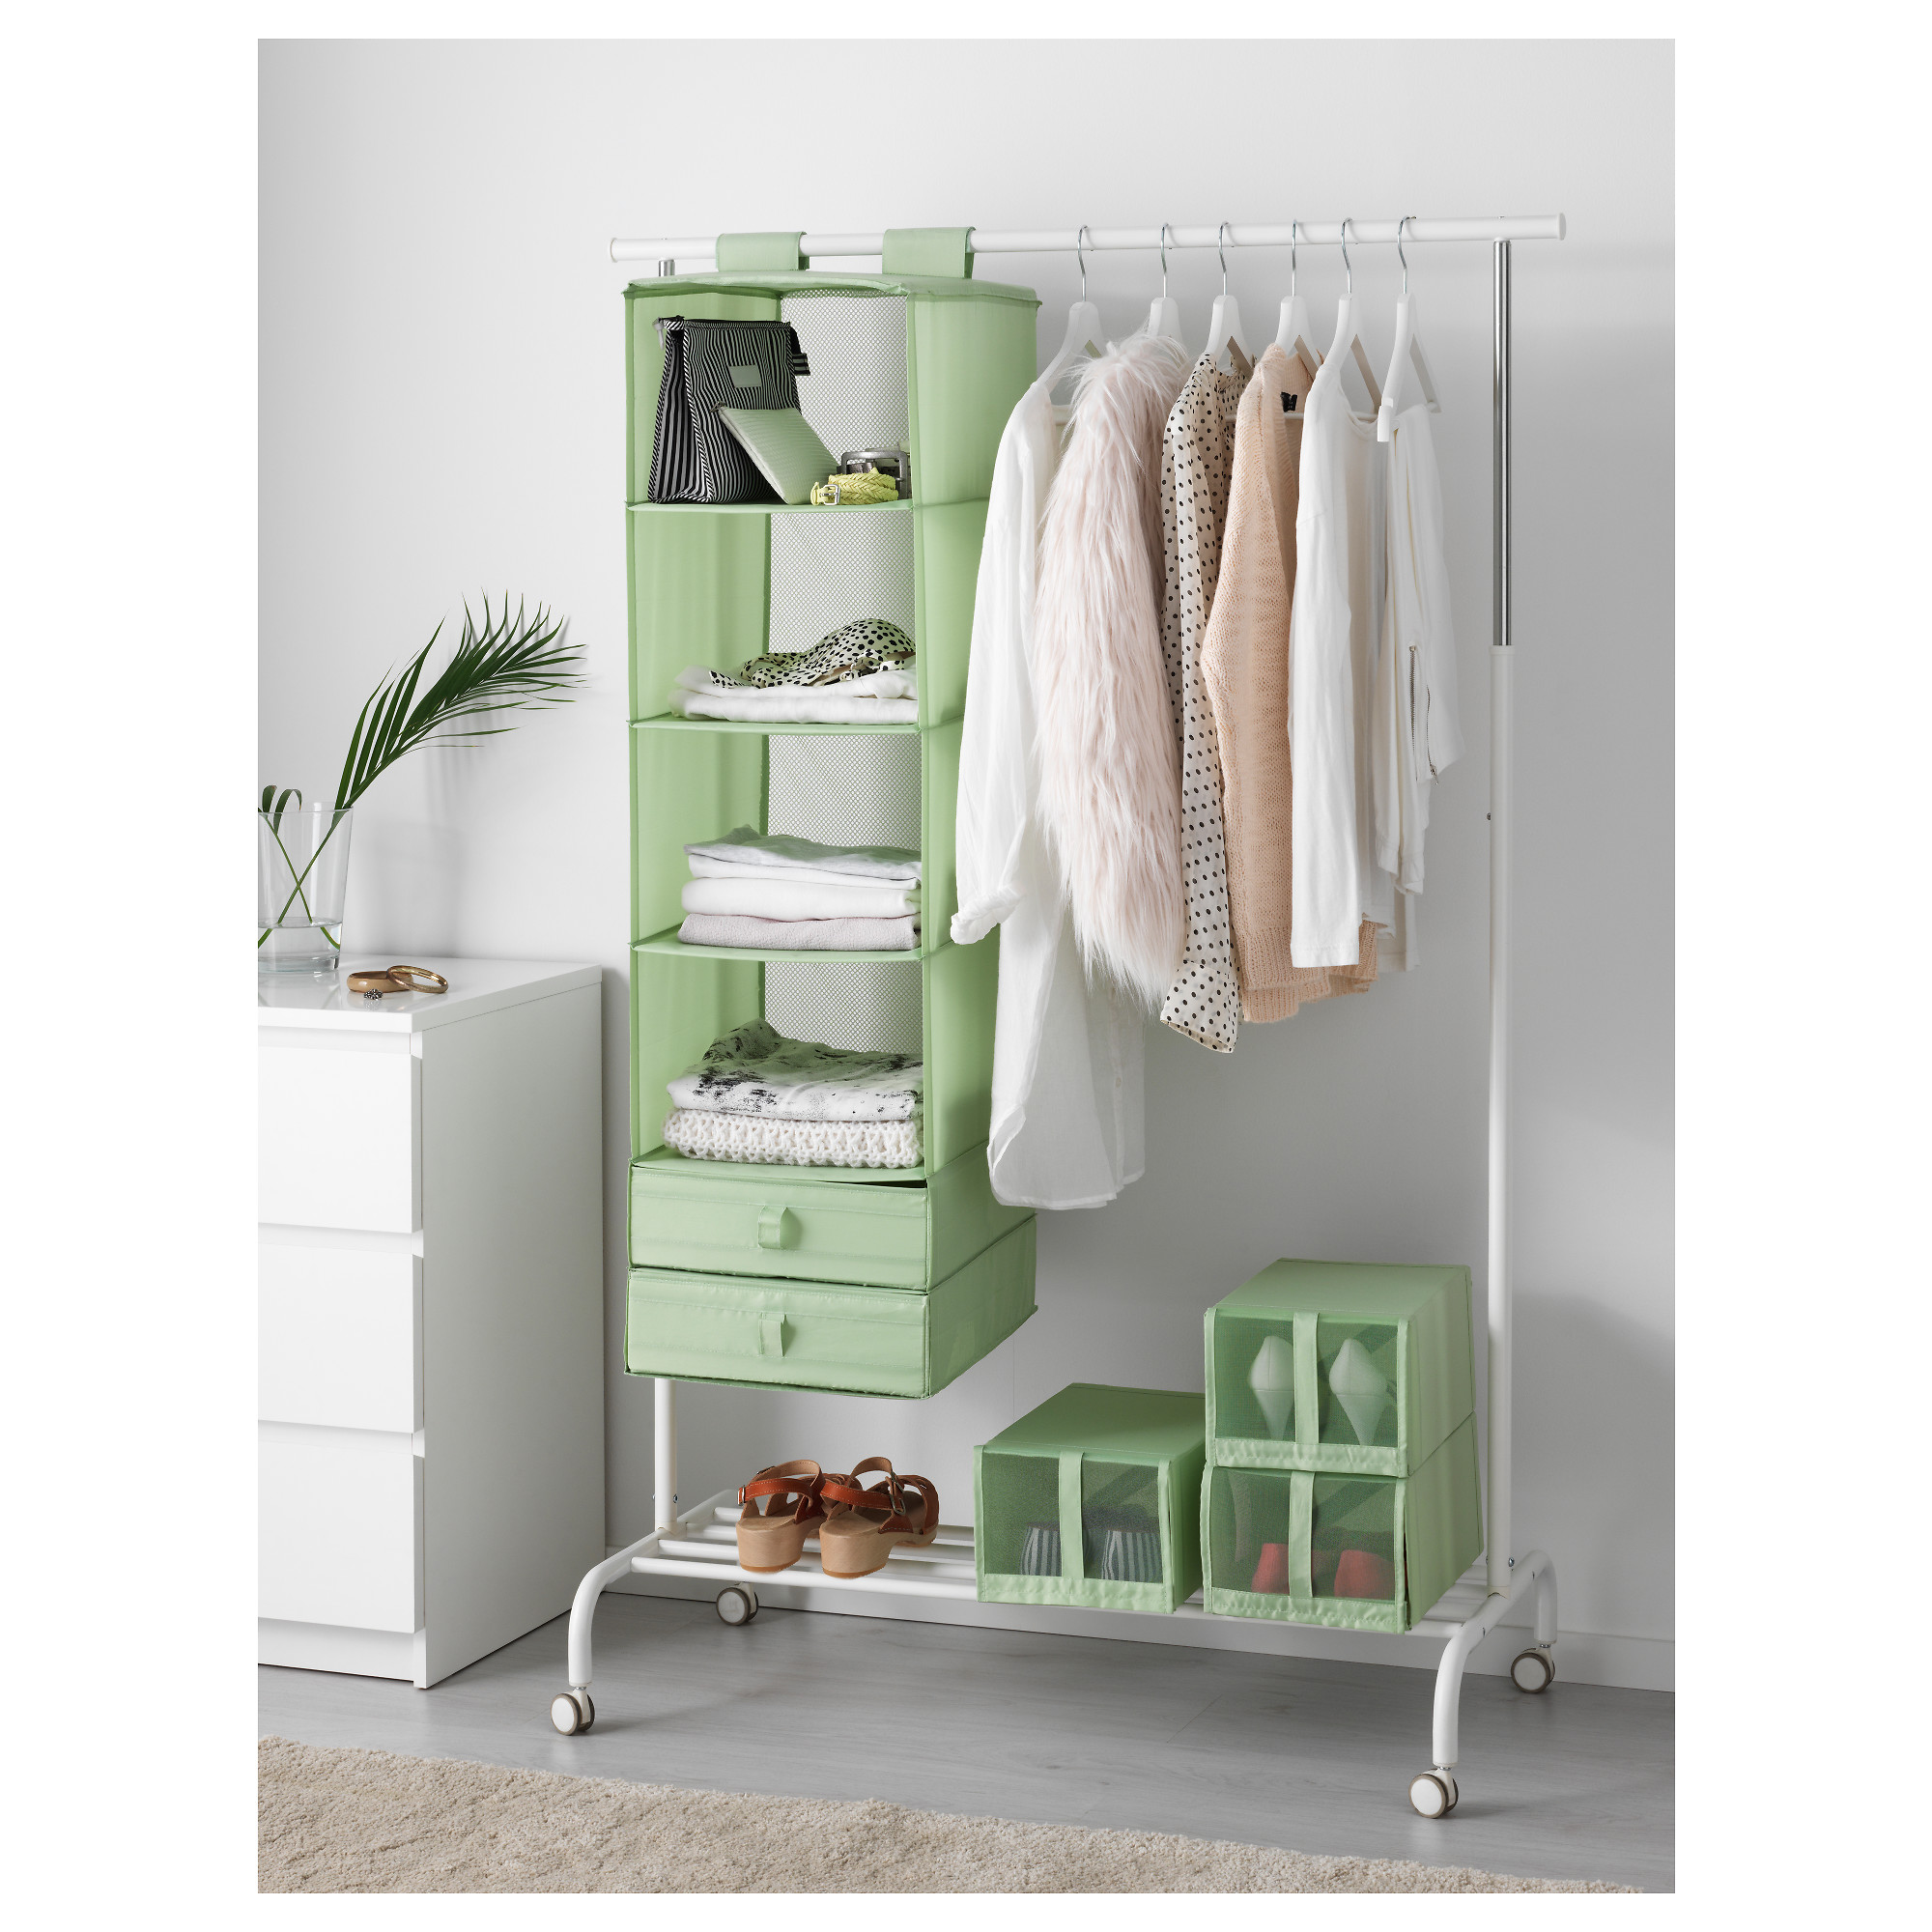 Easy Storage For Small Es Ikea Skubb Organizer